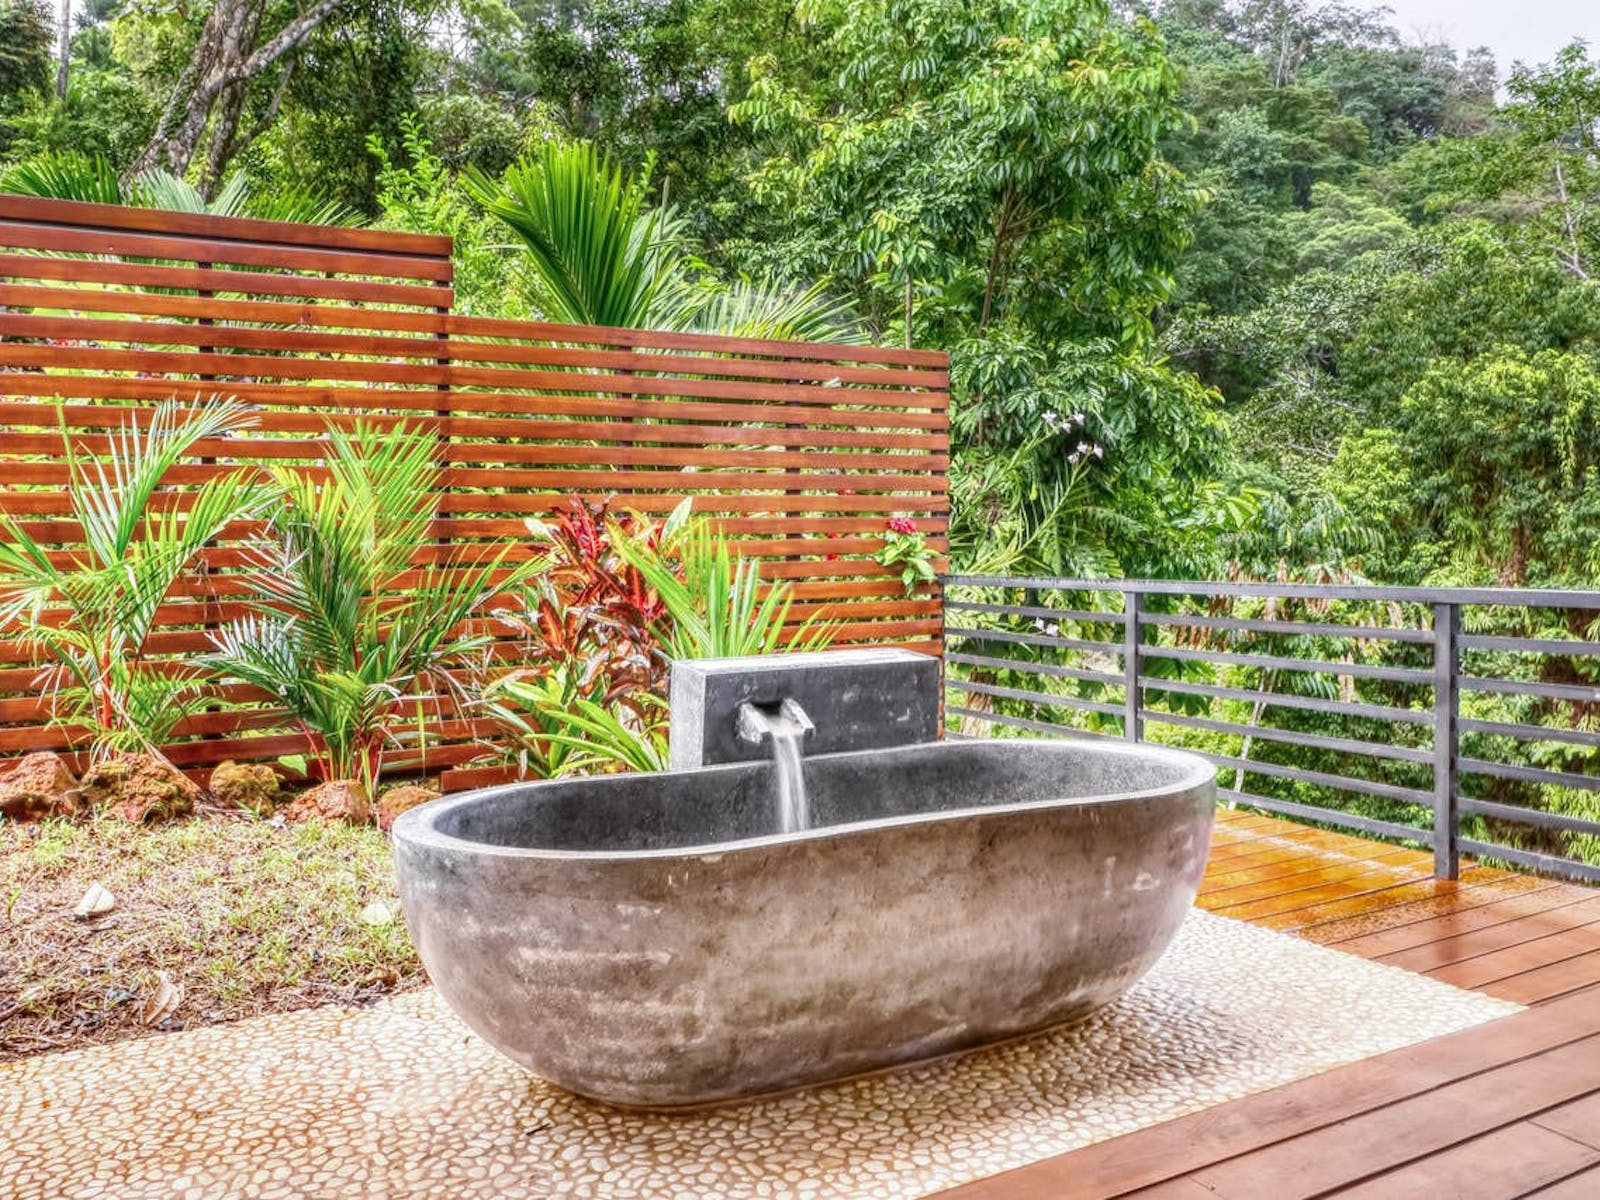 one-of-a-kind bathtub made from carved rock